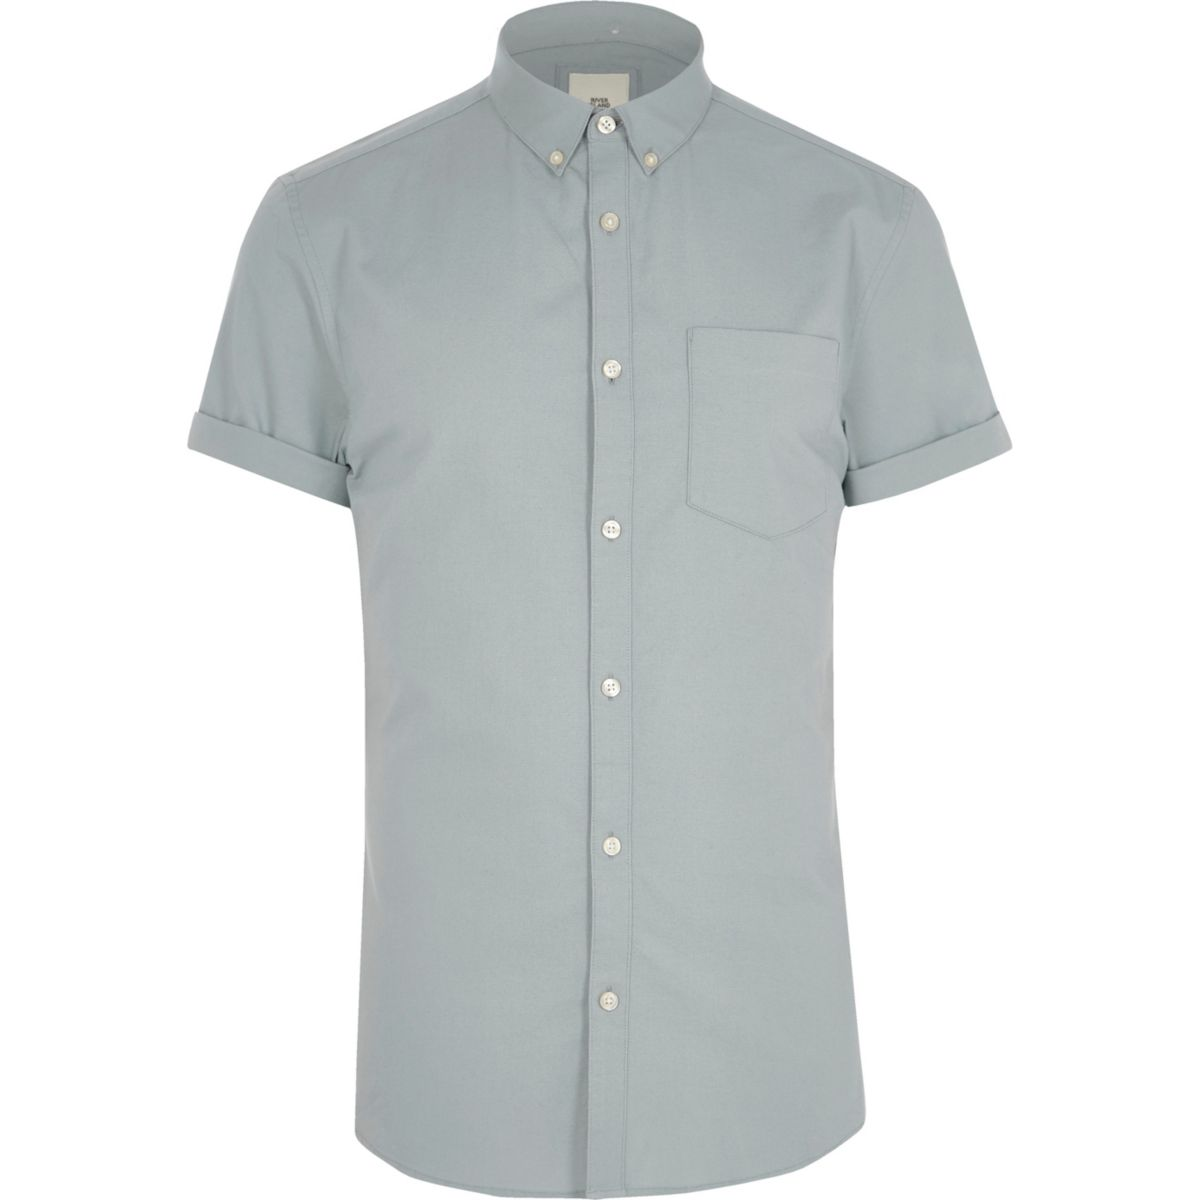 Grey muscle fit short sleeve shirt